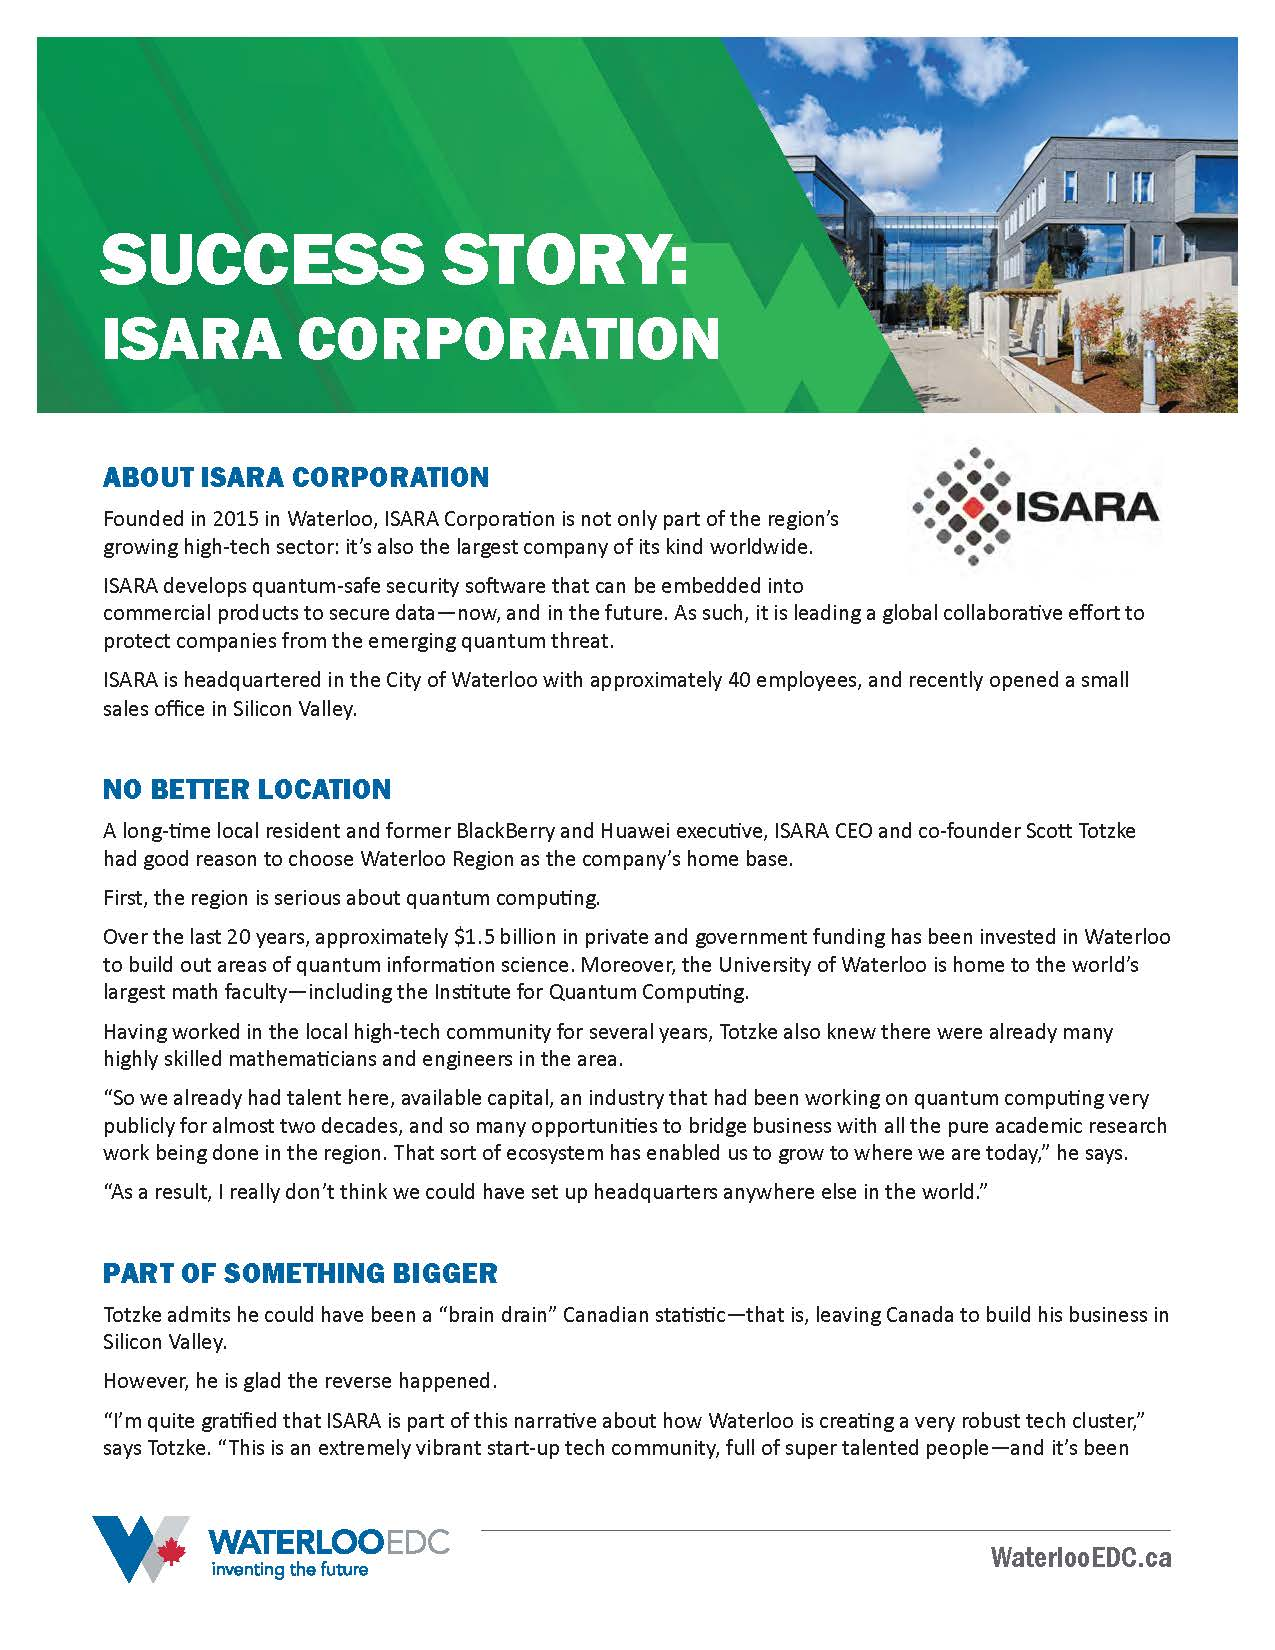 Success Story: ISARA - Download PDF